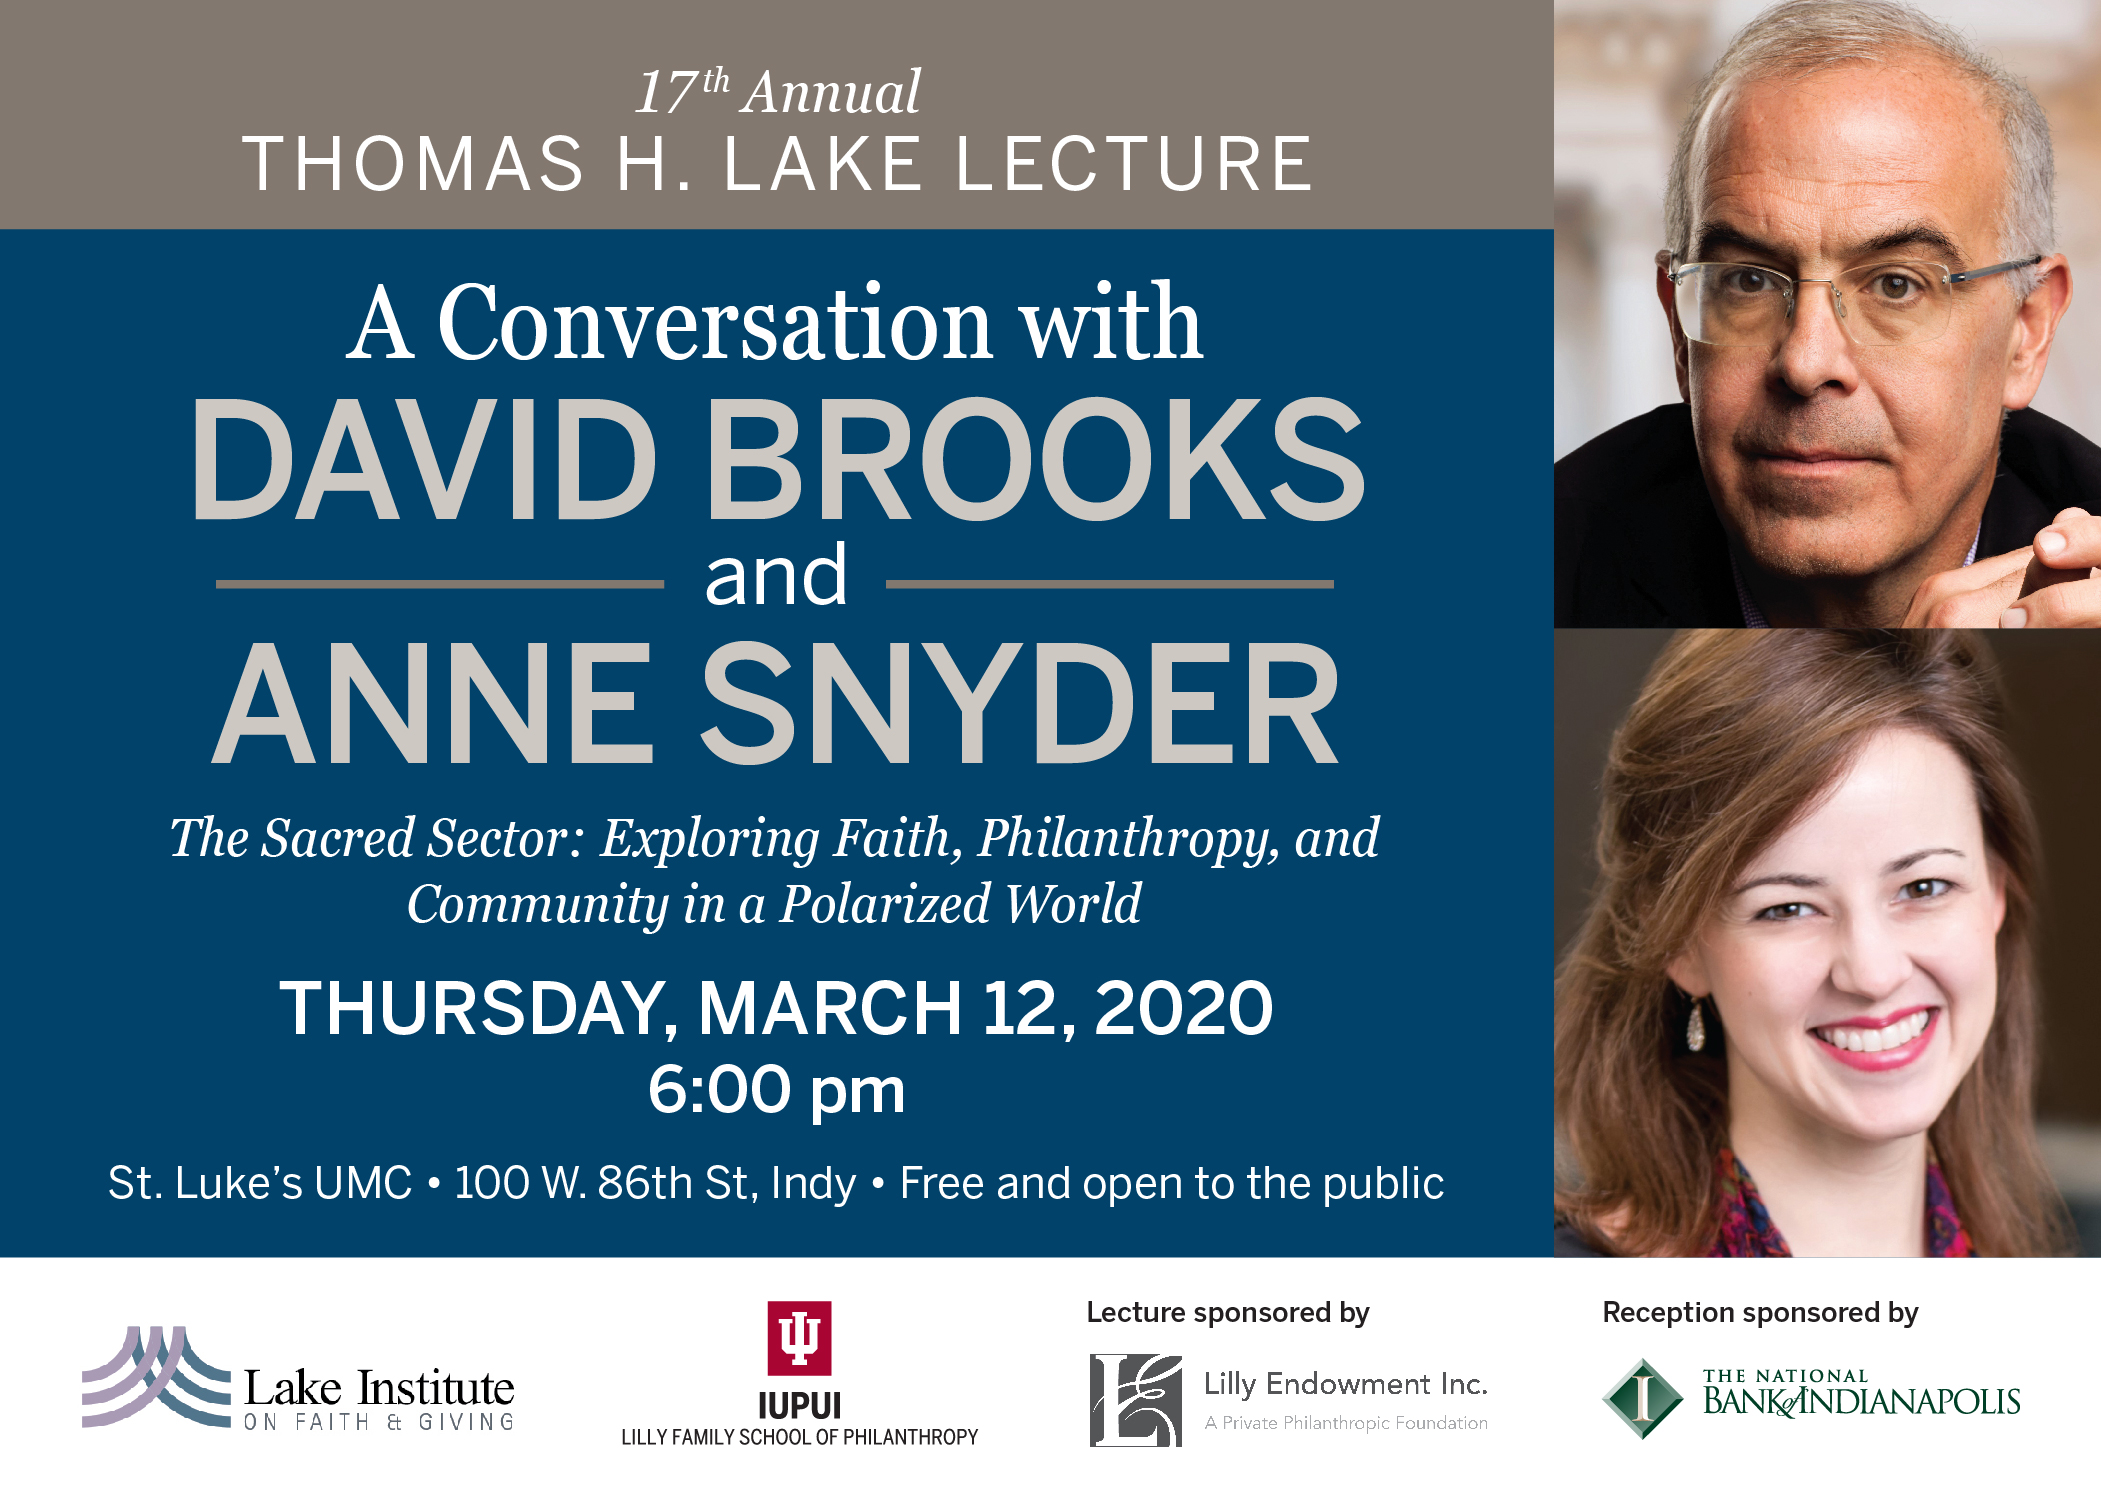 Lake Lecture 2020 with David Brooks and Anne Snyder